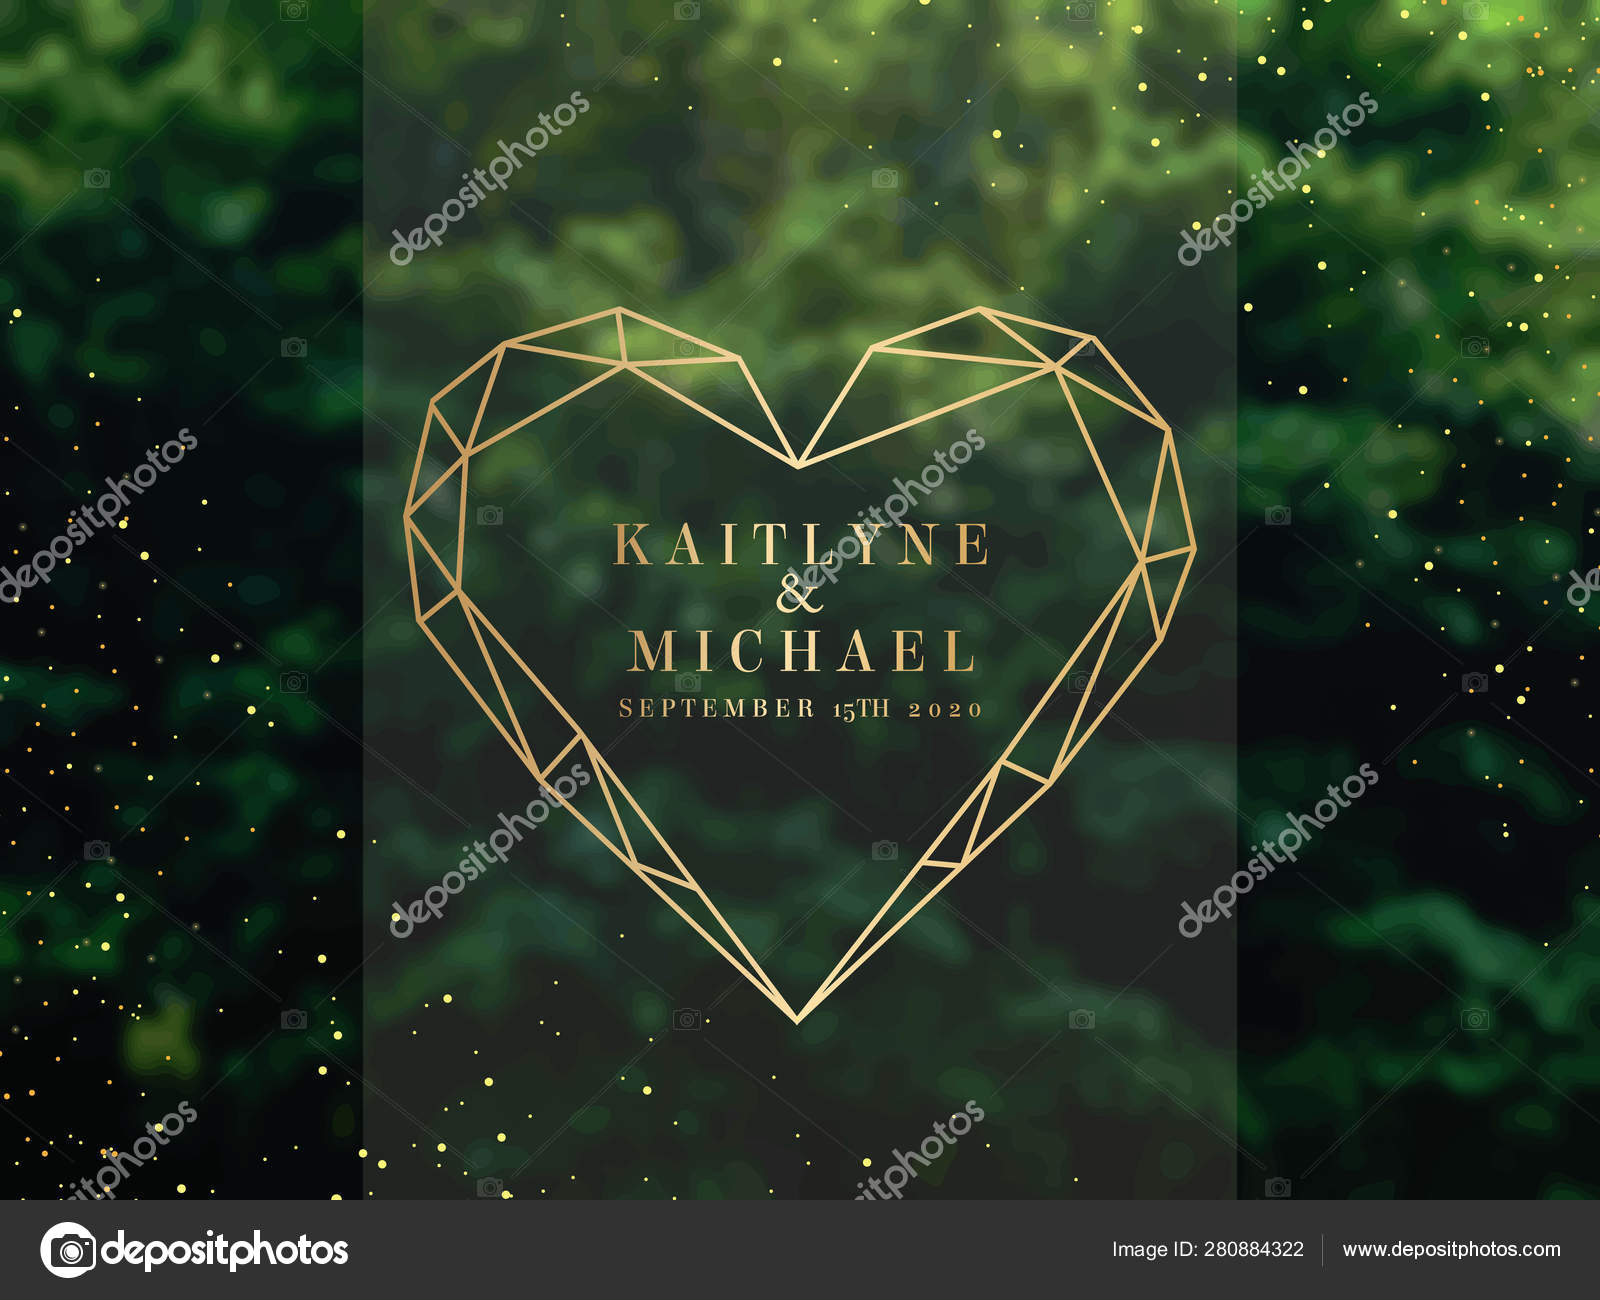 Emerald Greenery Forest Foliage Vector Background Stock